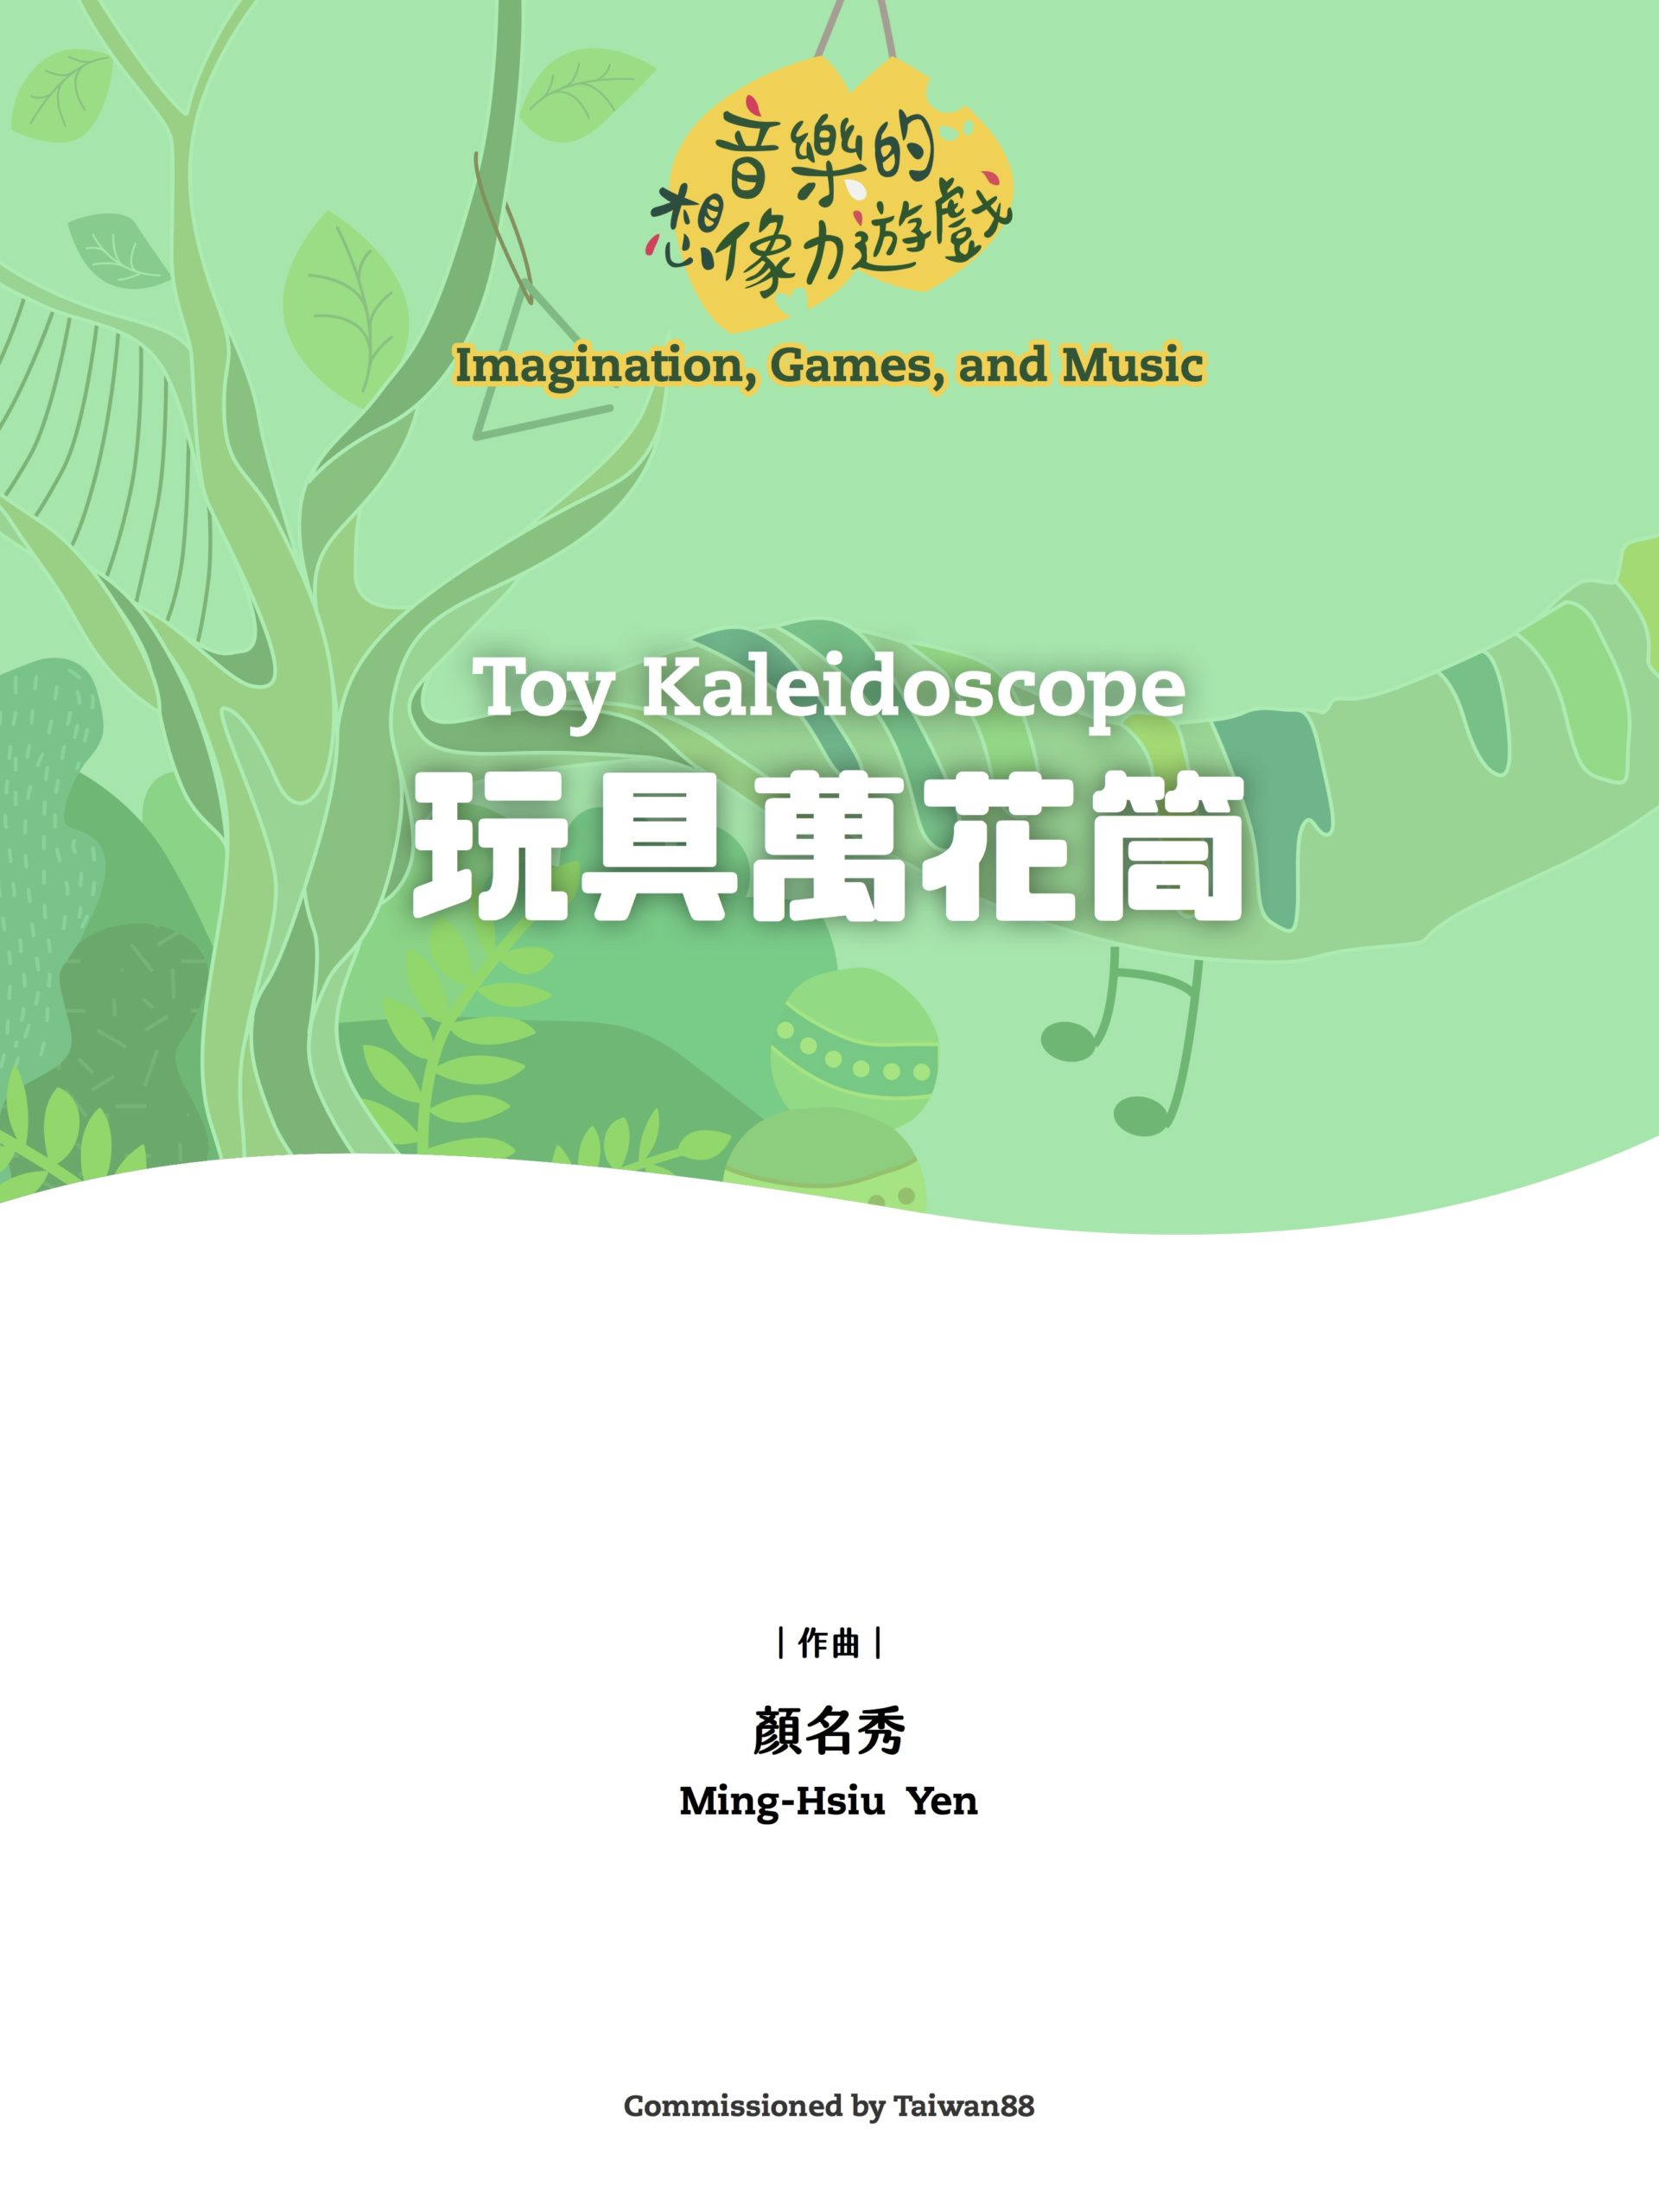 Toy Kaleidoscope (Ming-Hsiu Yen) for Four Hands Piano